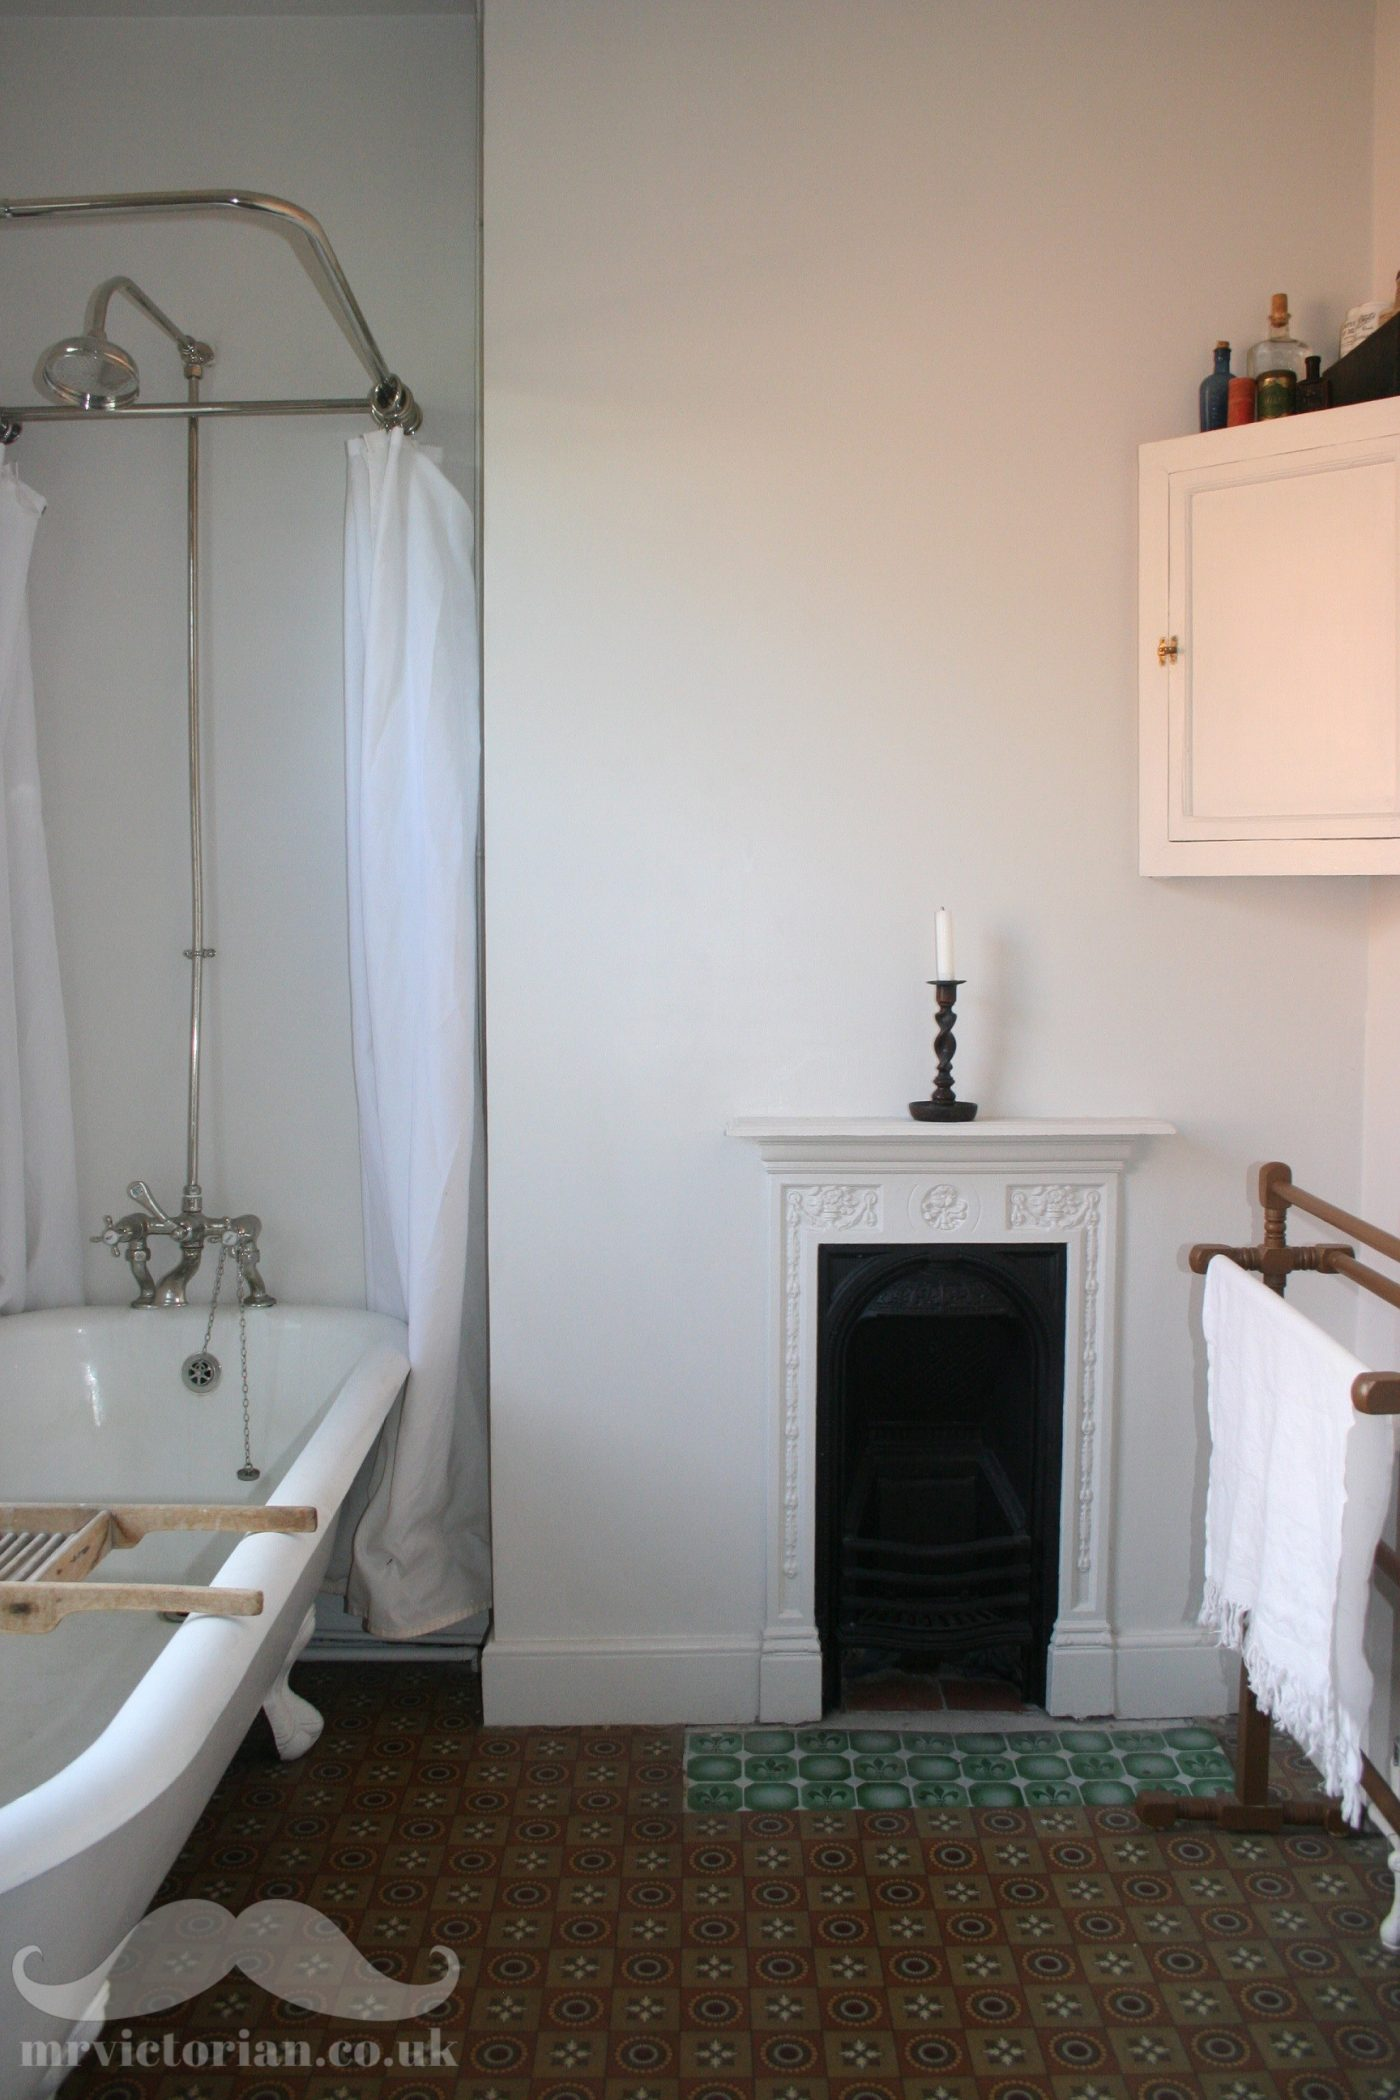 Edwardian bathroom cast iron bath linoleum fireplace